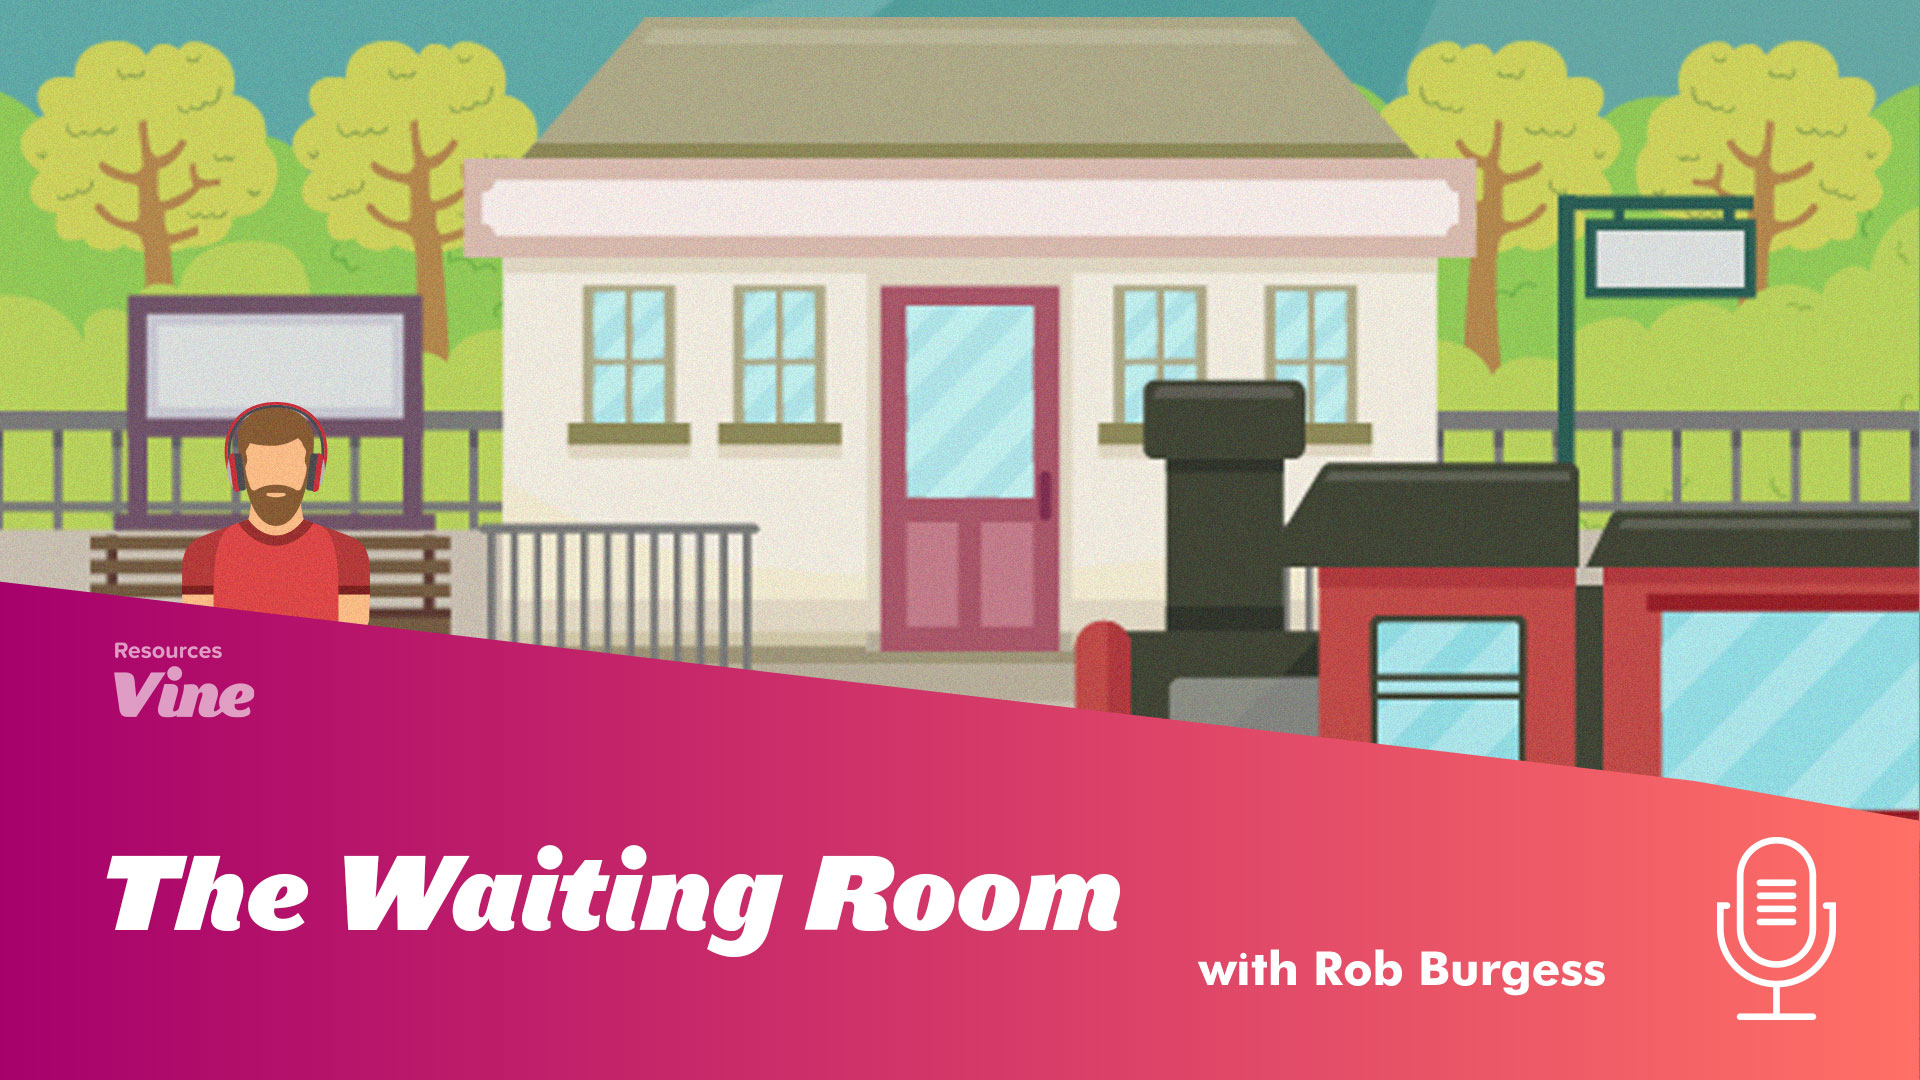 Thumbnail_The_Waiting_Room_RB